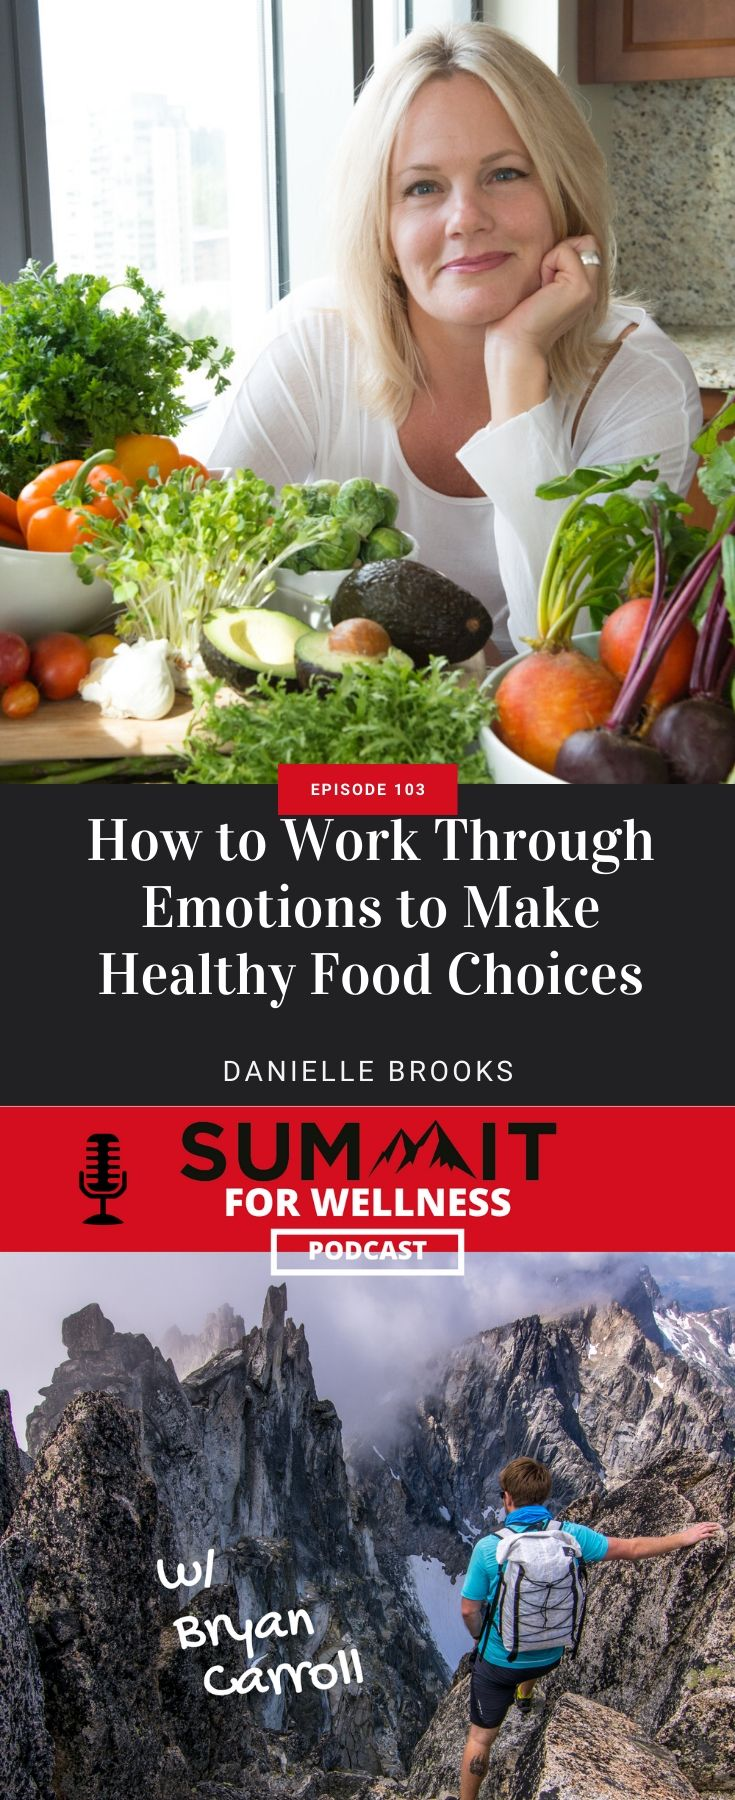 Danielle Brooks teaches us how to control our emotional eating